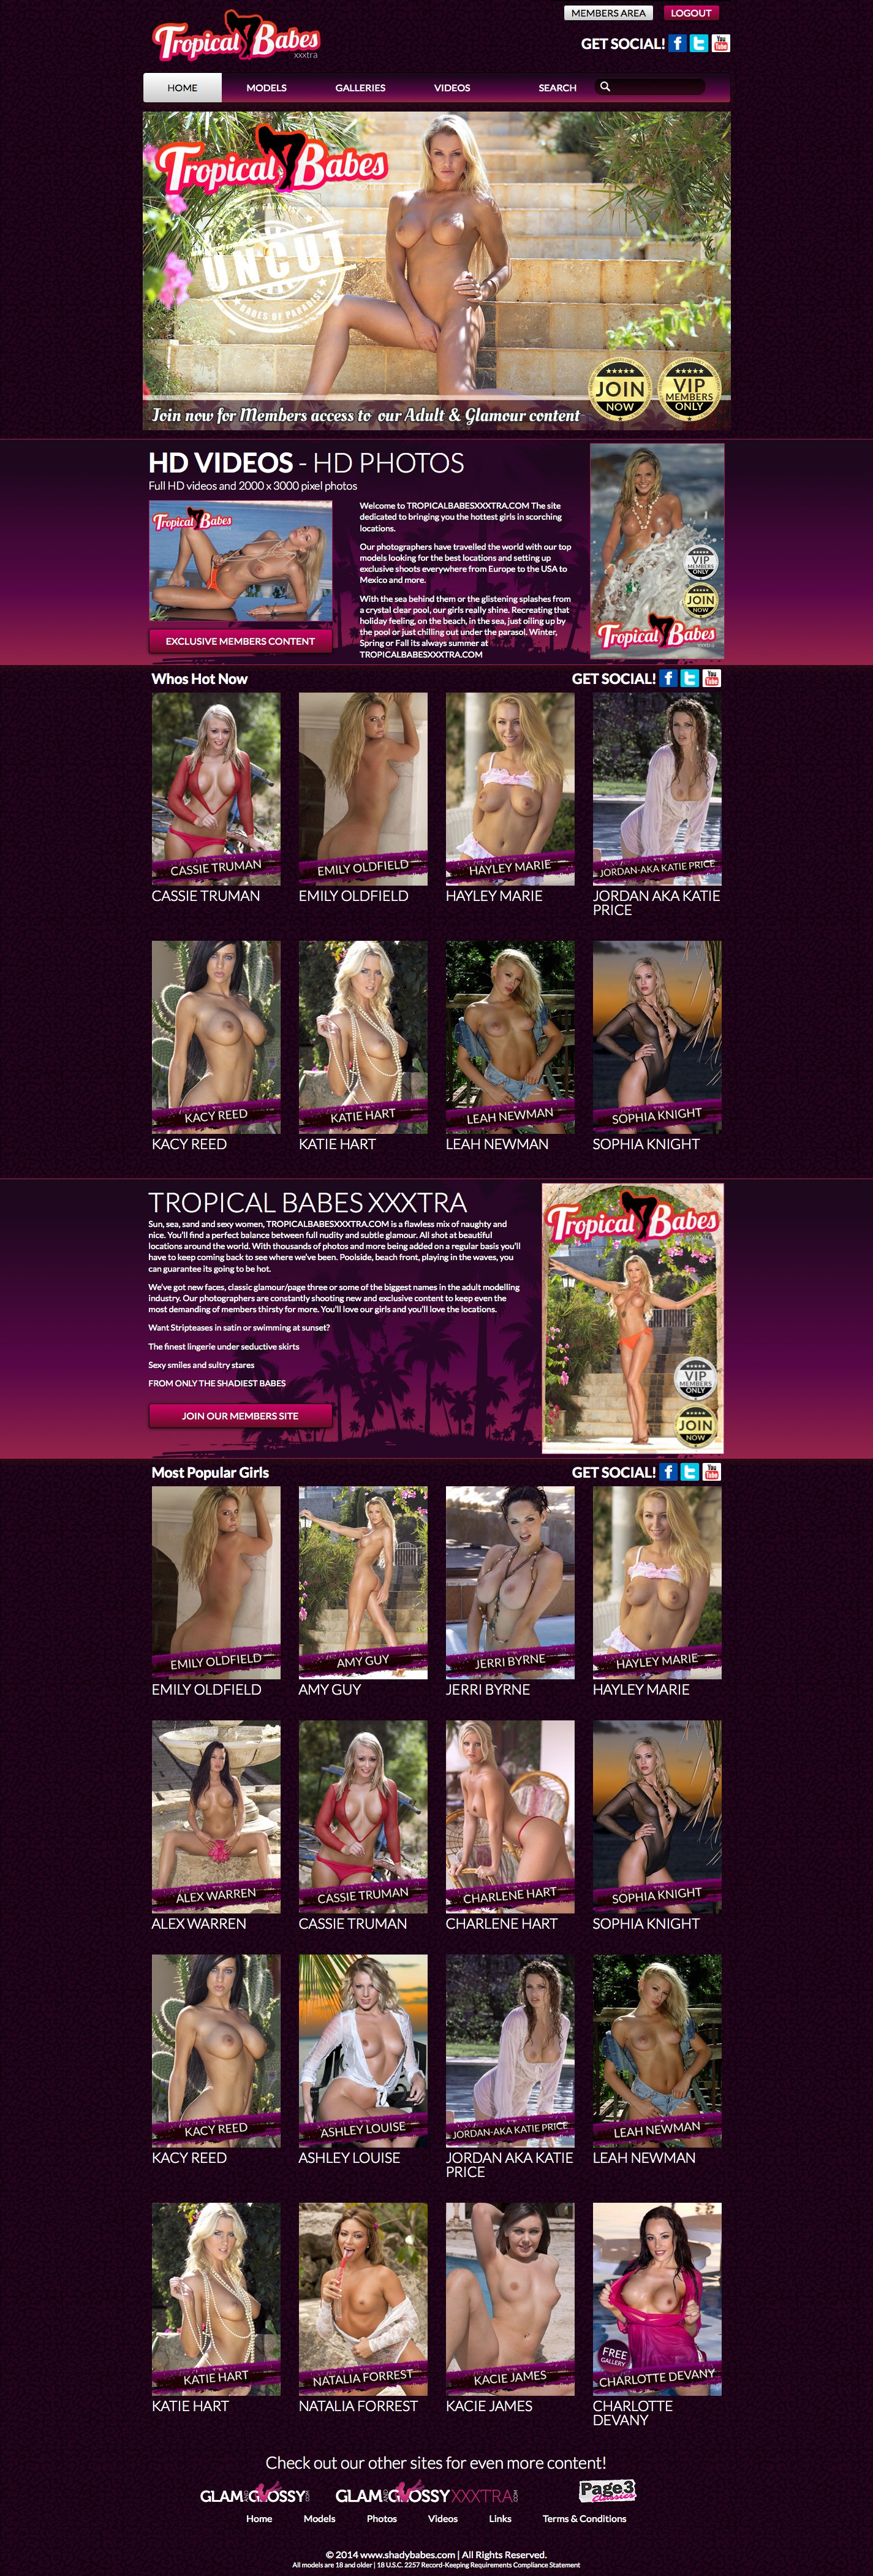 Tropical Babes XXXtra members